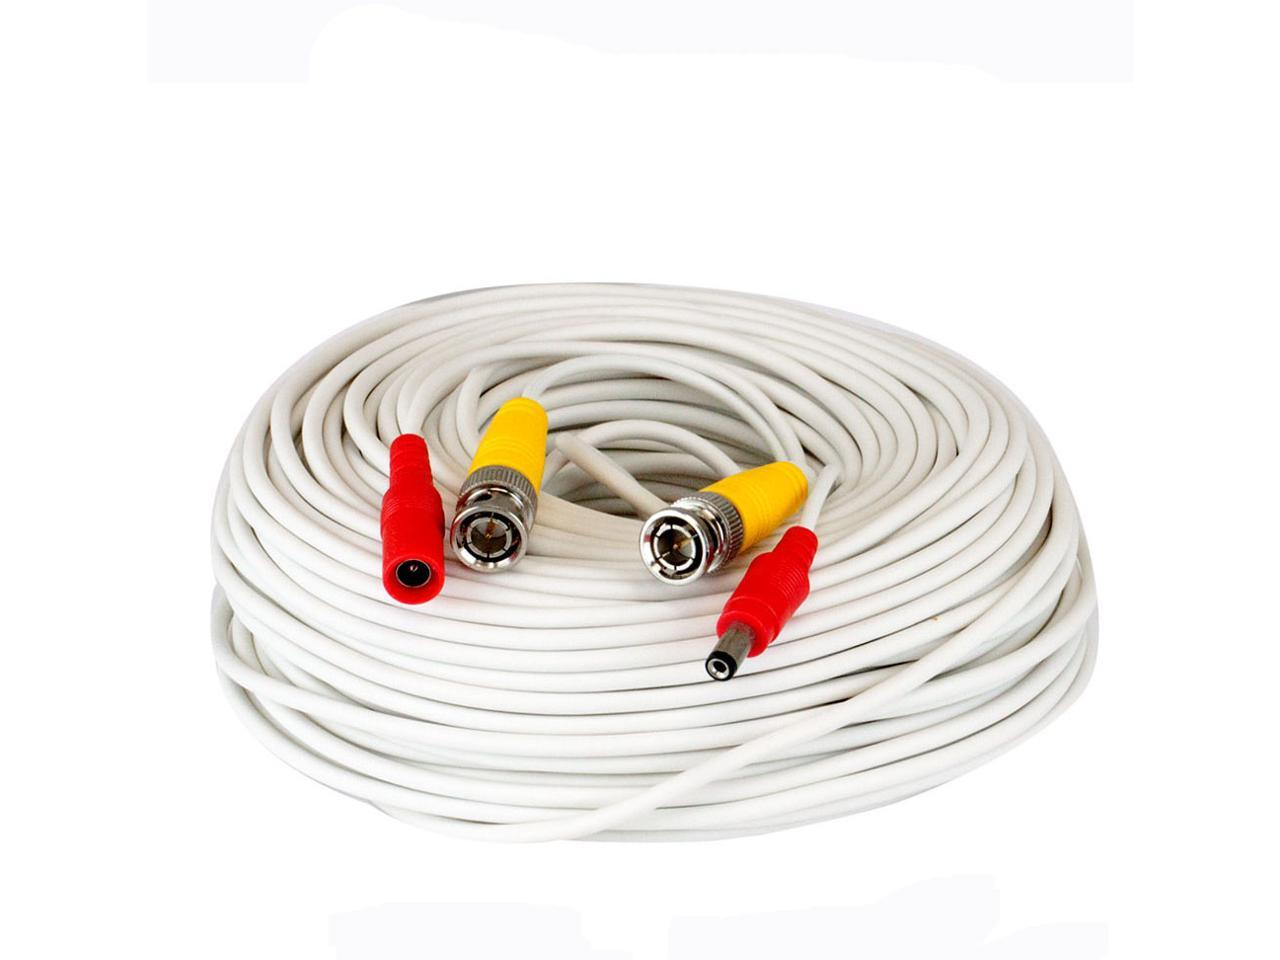 All in one 50ft HEAVY DUTY PREMADE SIAMESE CABLE White color